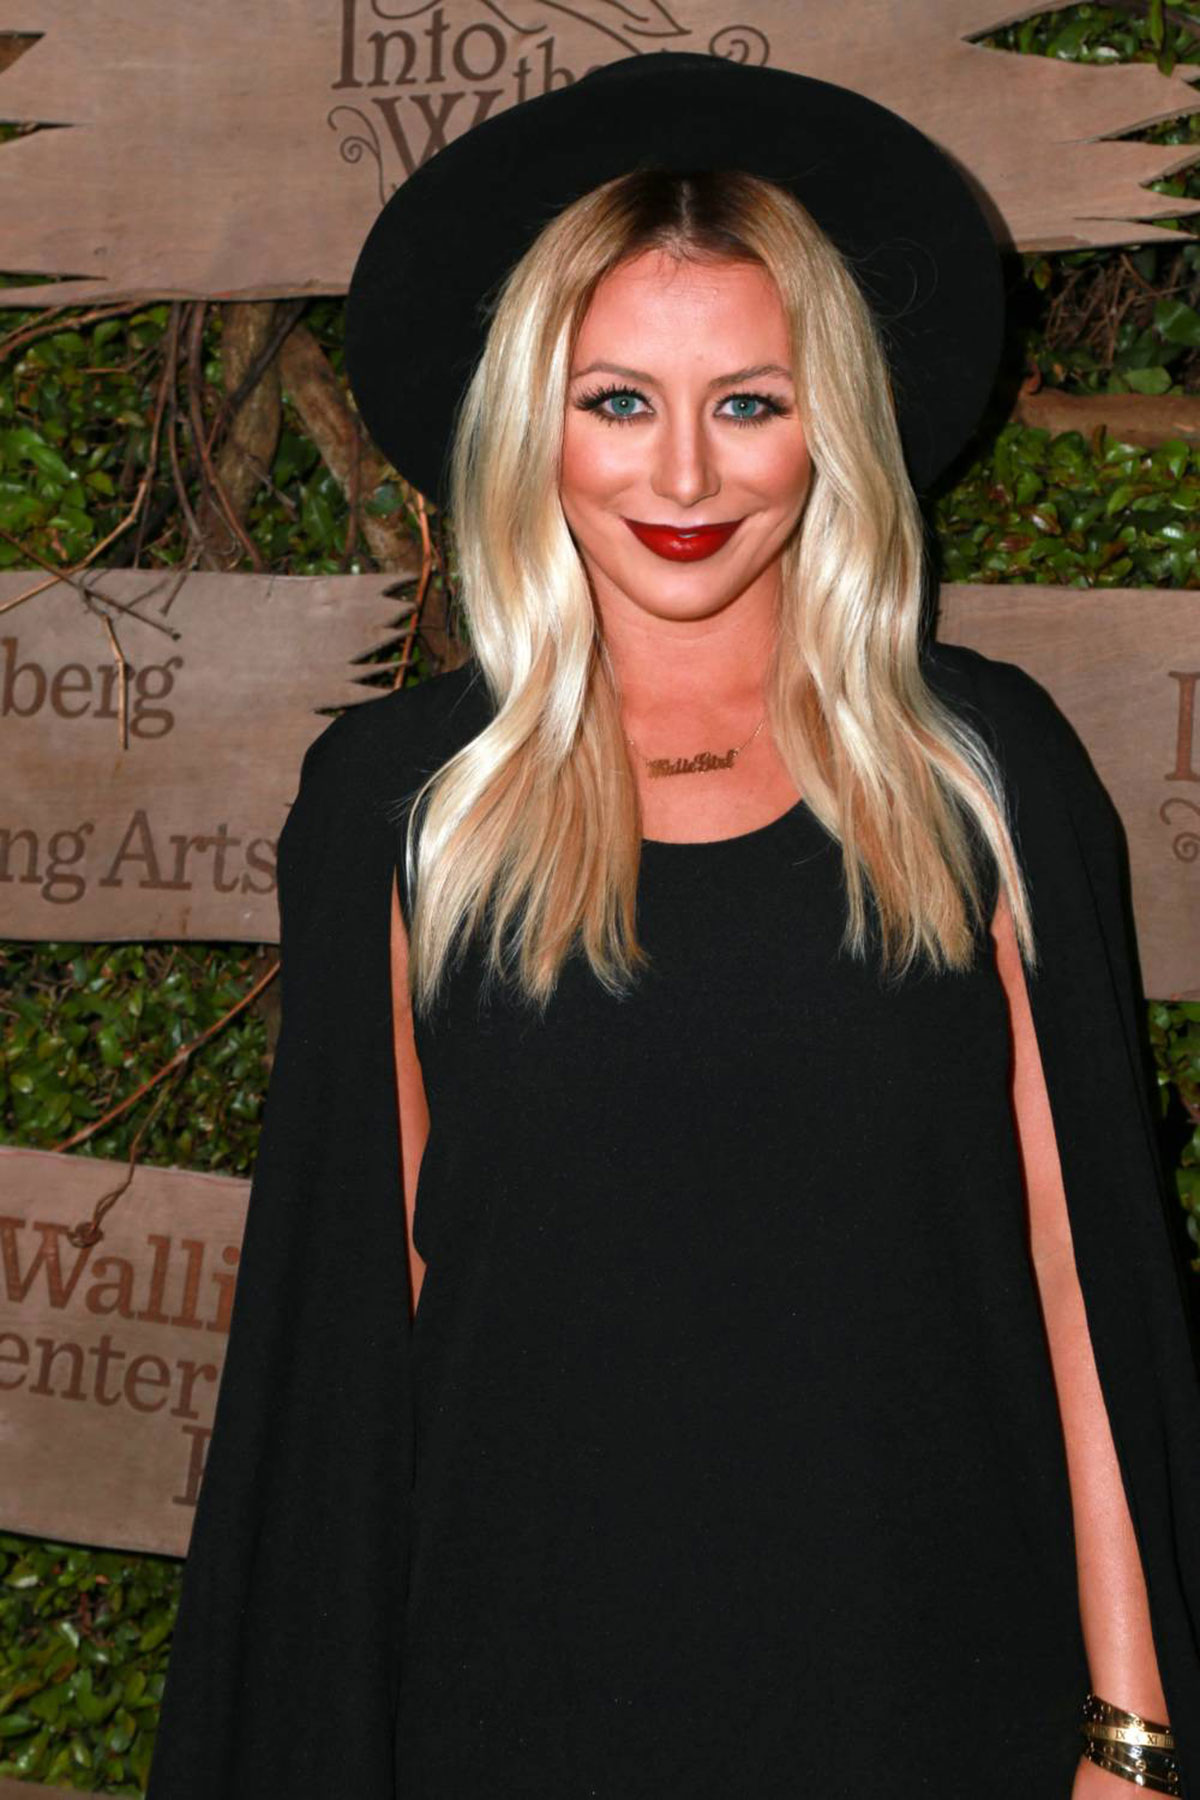 Aubrey o day archives page 3 of 4 hawtcelebs hawtcelebs - Aubrey O Day Into The Woods Opening Night Event